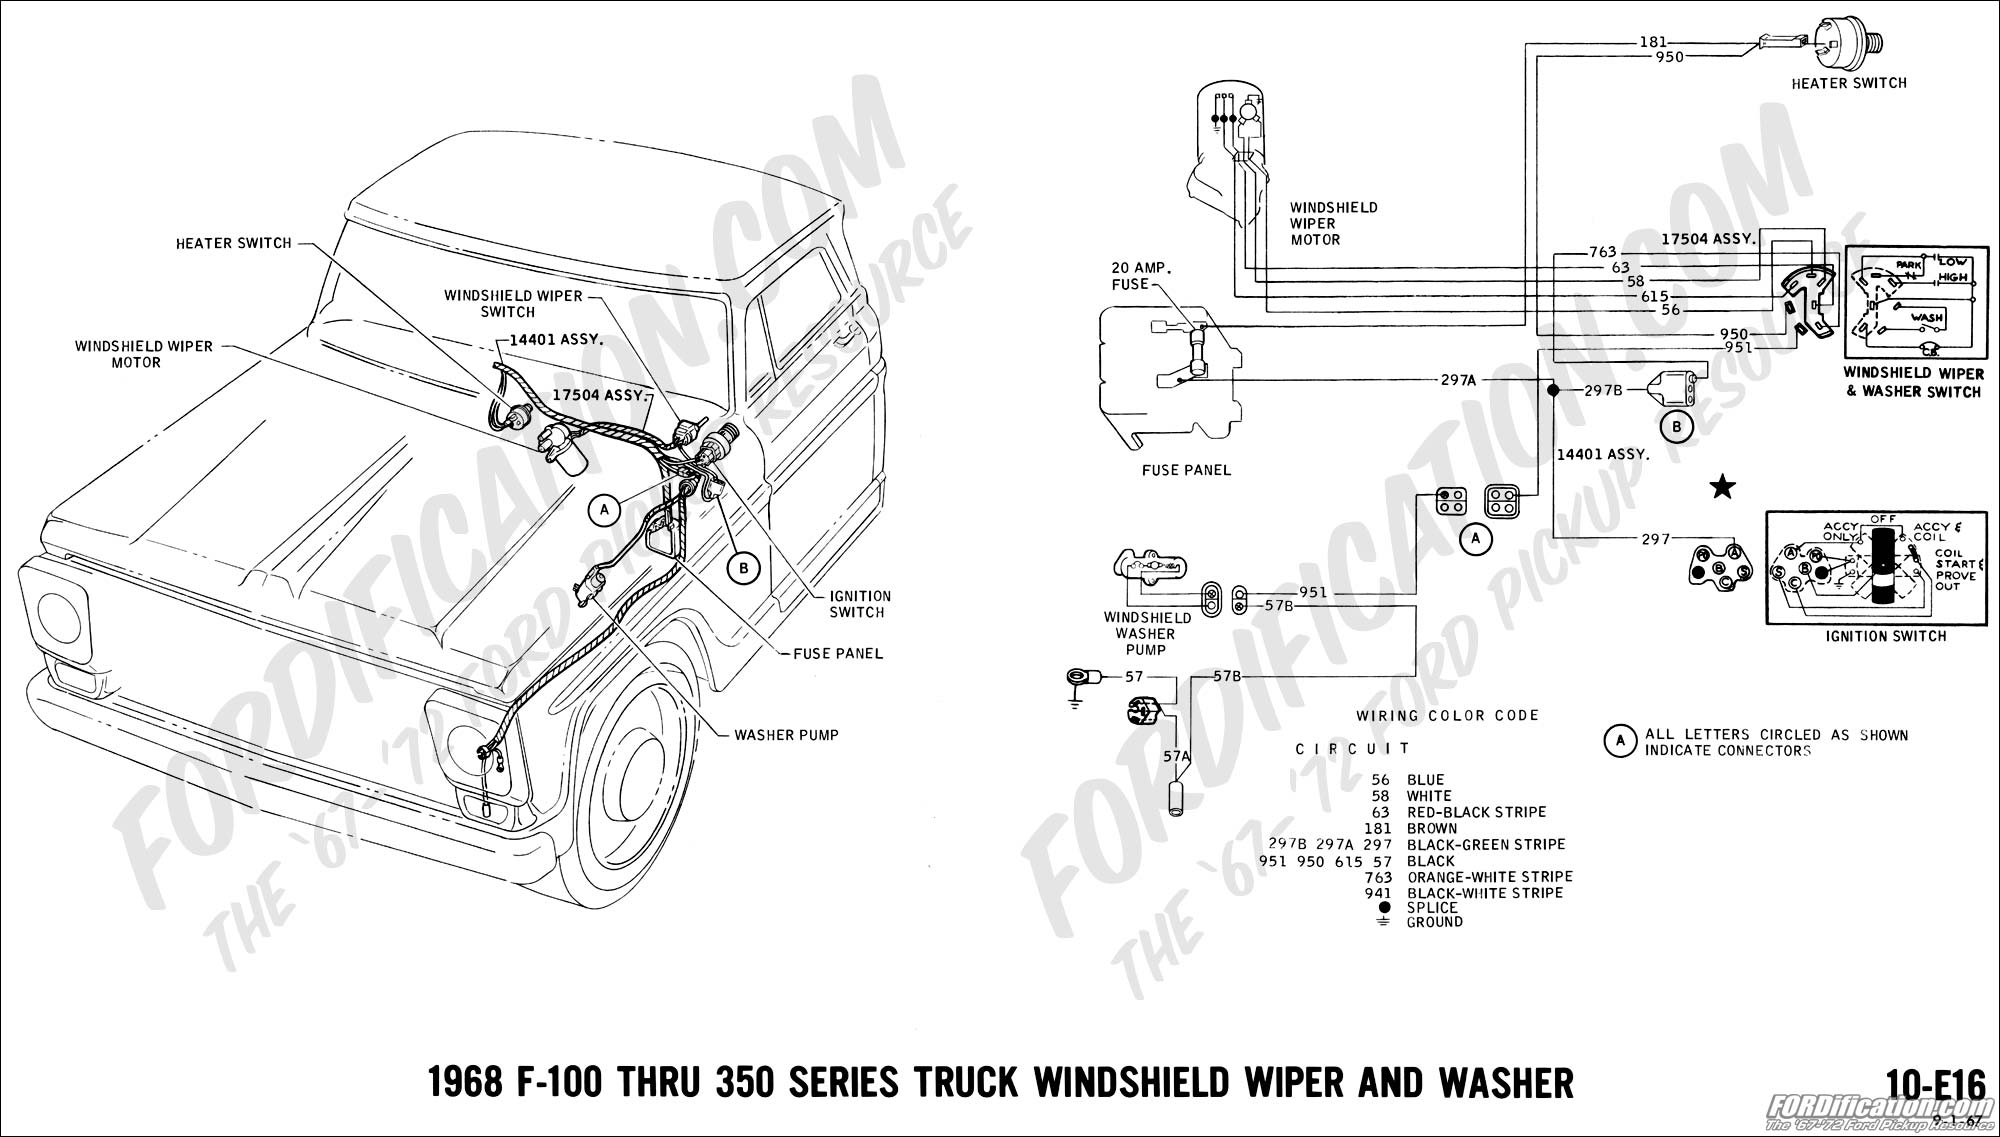 1985 Ford F 350 Wiring Diagram | Wiring Diagram  Ford Bronco Alternator Wiring Diagram on 1990 ford bronco fuse block diagram, 2005 ford escape alternator wiring diagram, 1990 range rover classic alternator wiring diagram, 1981 ford f-100 alternator wiring diagram, 1986 ford f-150 alternator wiring diagram, 1996 ford f-150 alternator wiring diagram, 1990 ford bronco exhaust diagram, 1995 ford f-150 alternator wiring diagram,